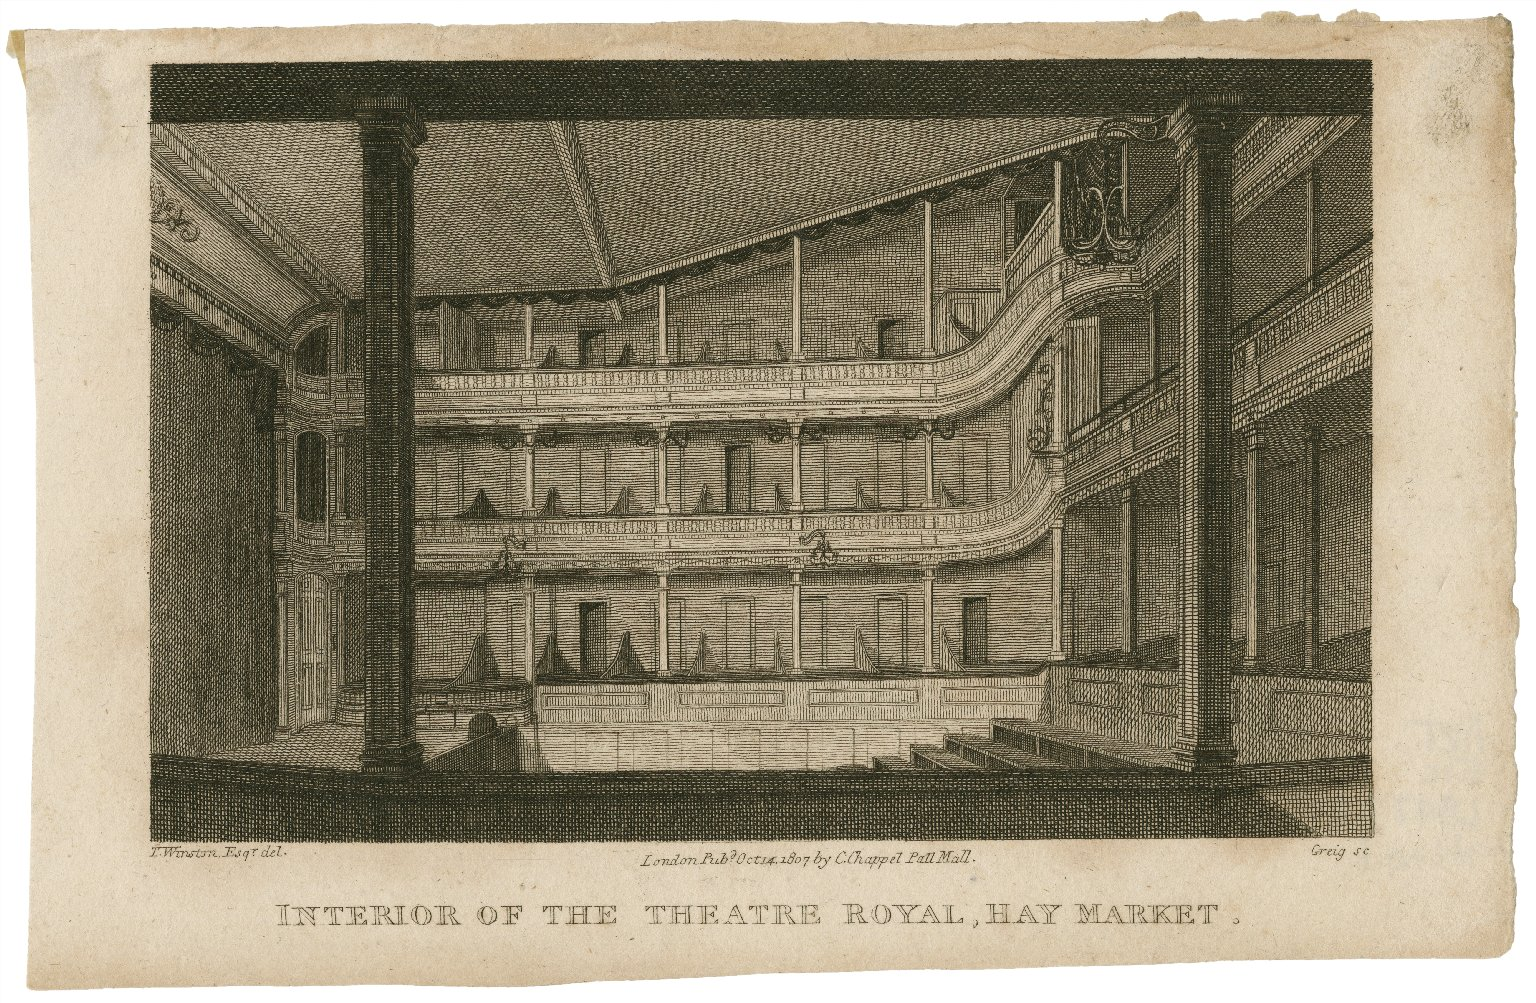 <b>Theatre Royal, Haymarket, 1807</b>     	</br>Interior of the Theatre Royal, Haymarket, London, 1807</br><br/><b>Source: </b><i>John Greig, Interior of the Theatre Royal, Haymarket (Call number: ART File L847t1 H1 no.1), 1807, Folger Digital Image Collection, University of Cincinnati Libraries Digital Collections, University of Cincinnati, http://digproj.libraries.uc.edu:8180/luna/servlet/s/7i54x2</i>